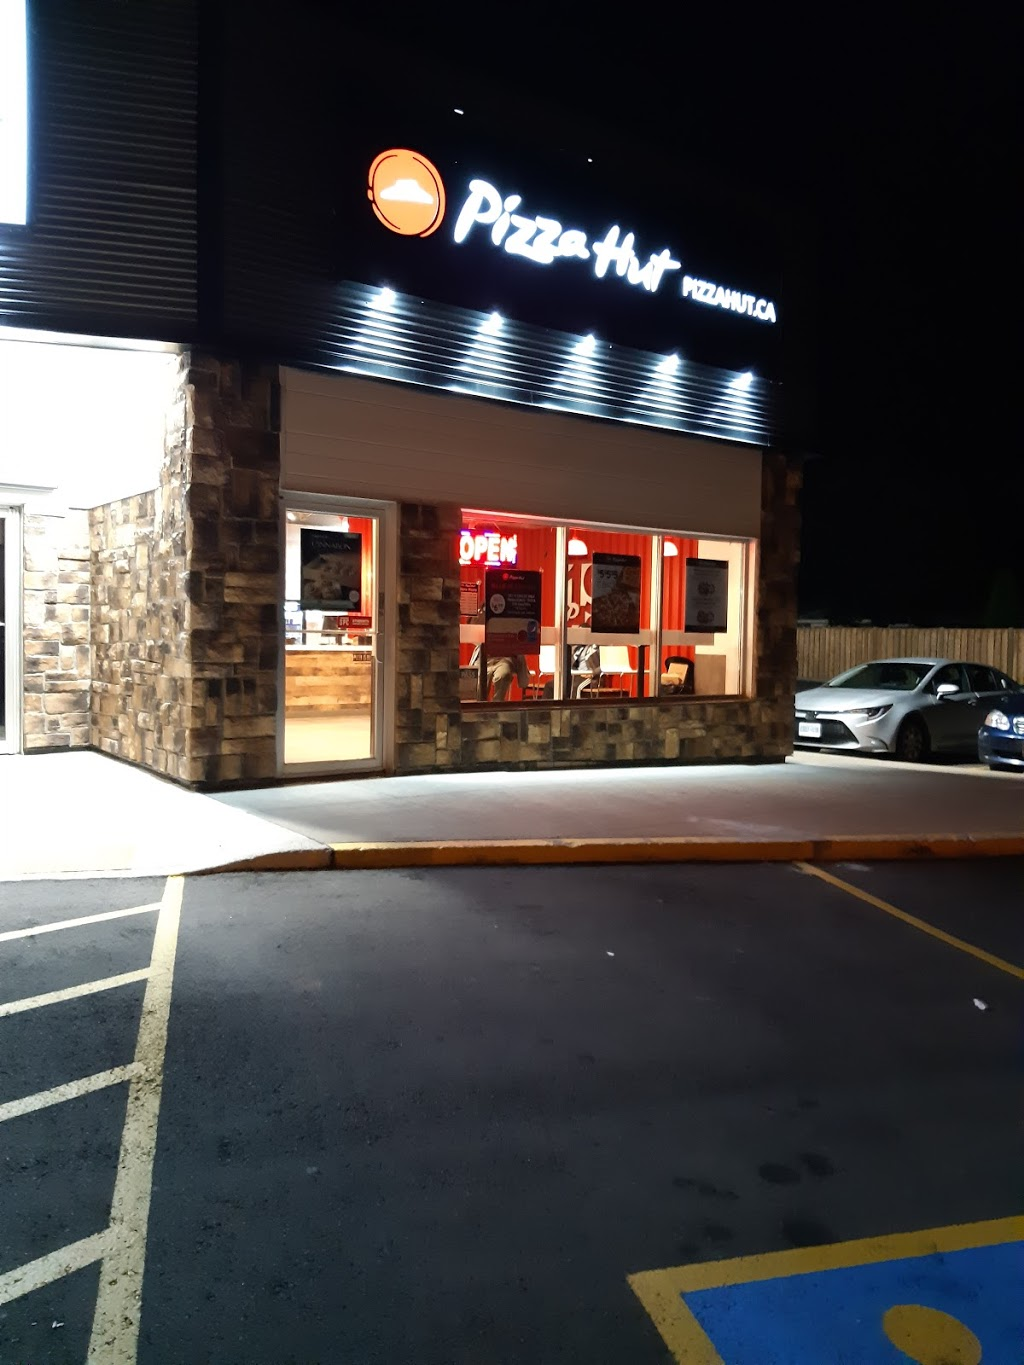 Pizza Hut | meal delivery | 3351 Lawrence Ave E, Scarborough, ON M1H 1A8, Canada | 4164395550 OR +1 416-439-5550